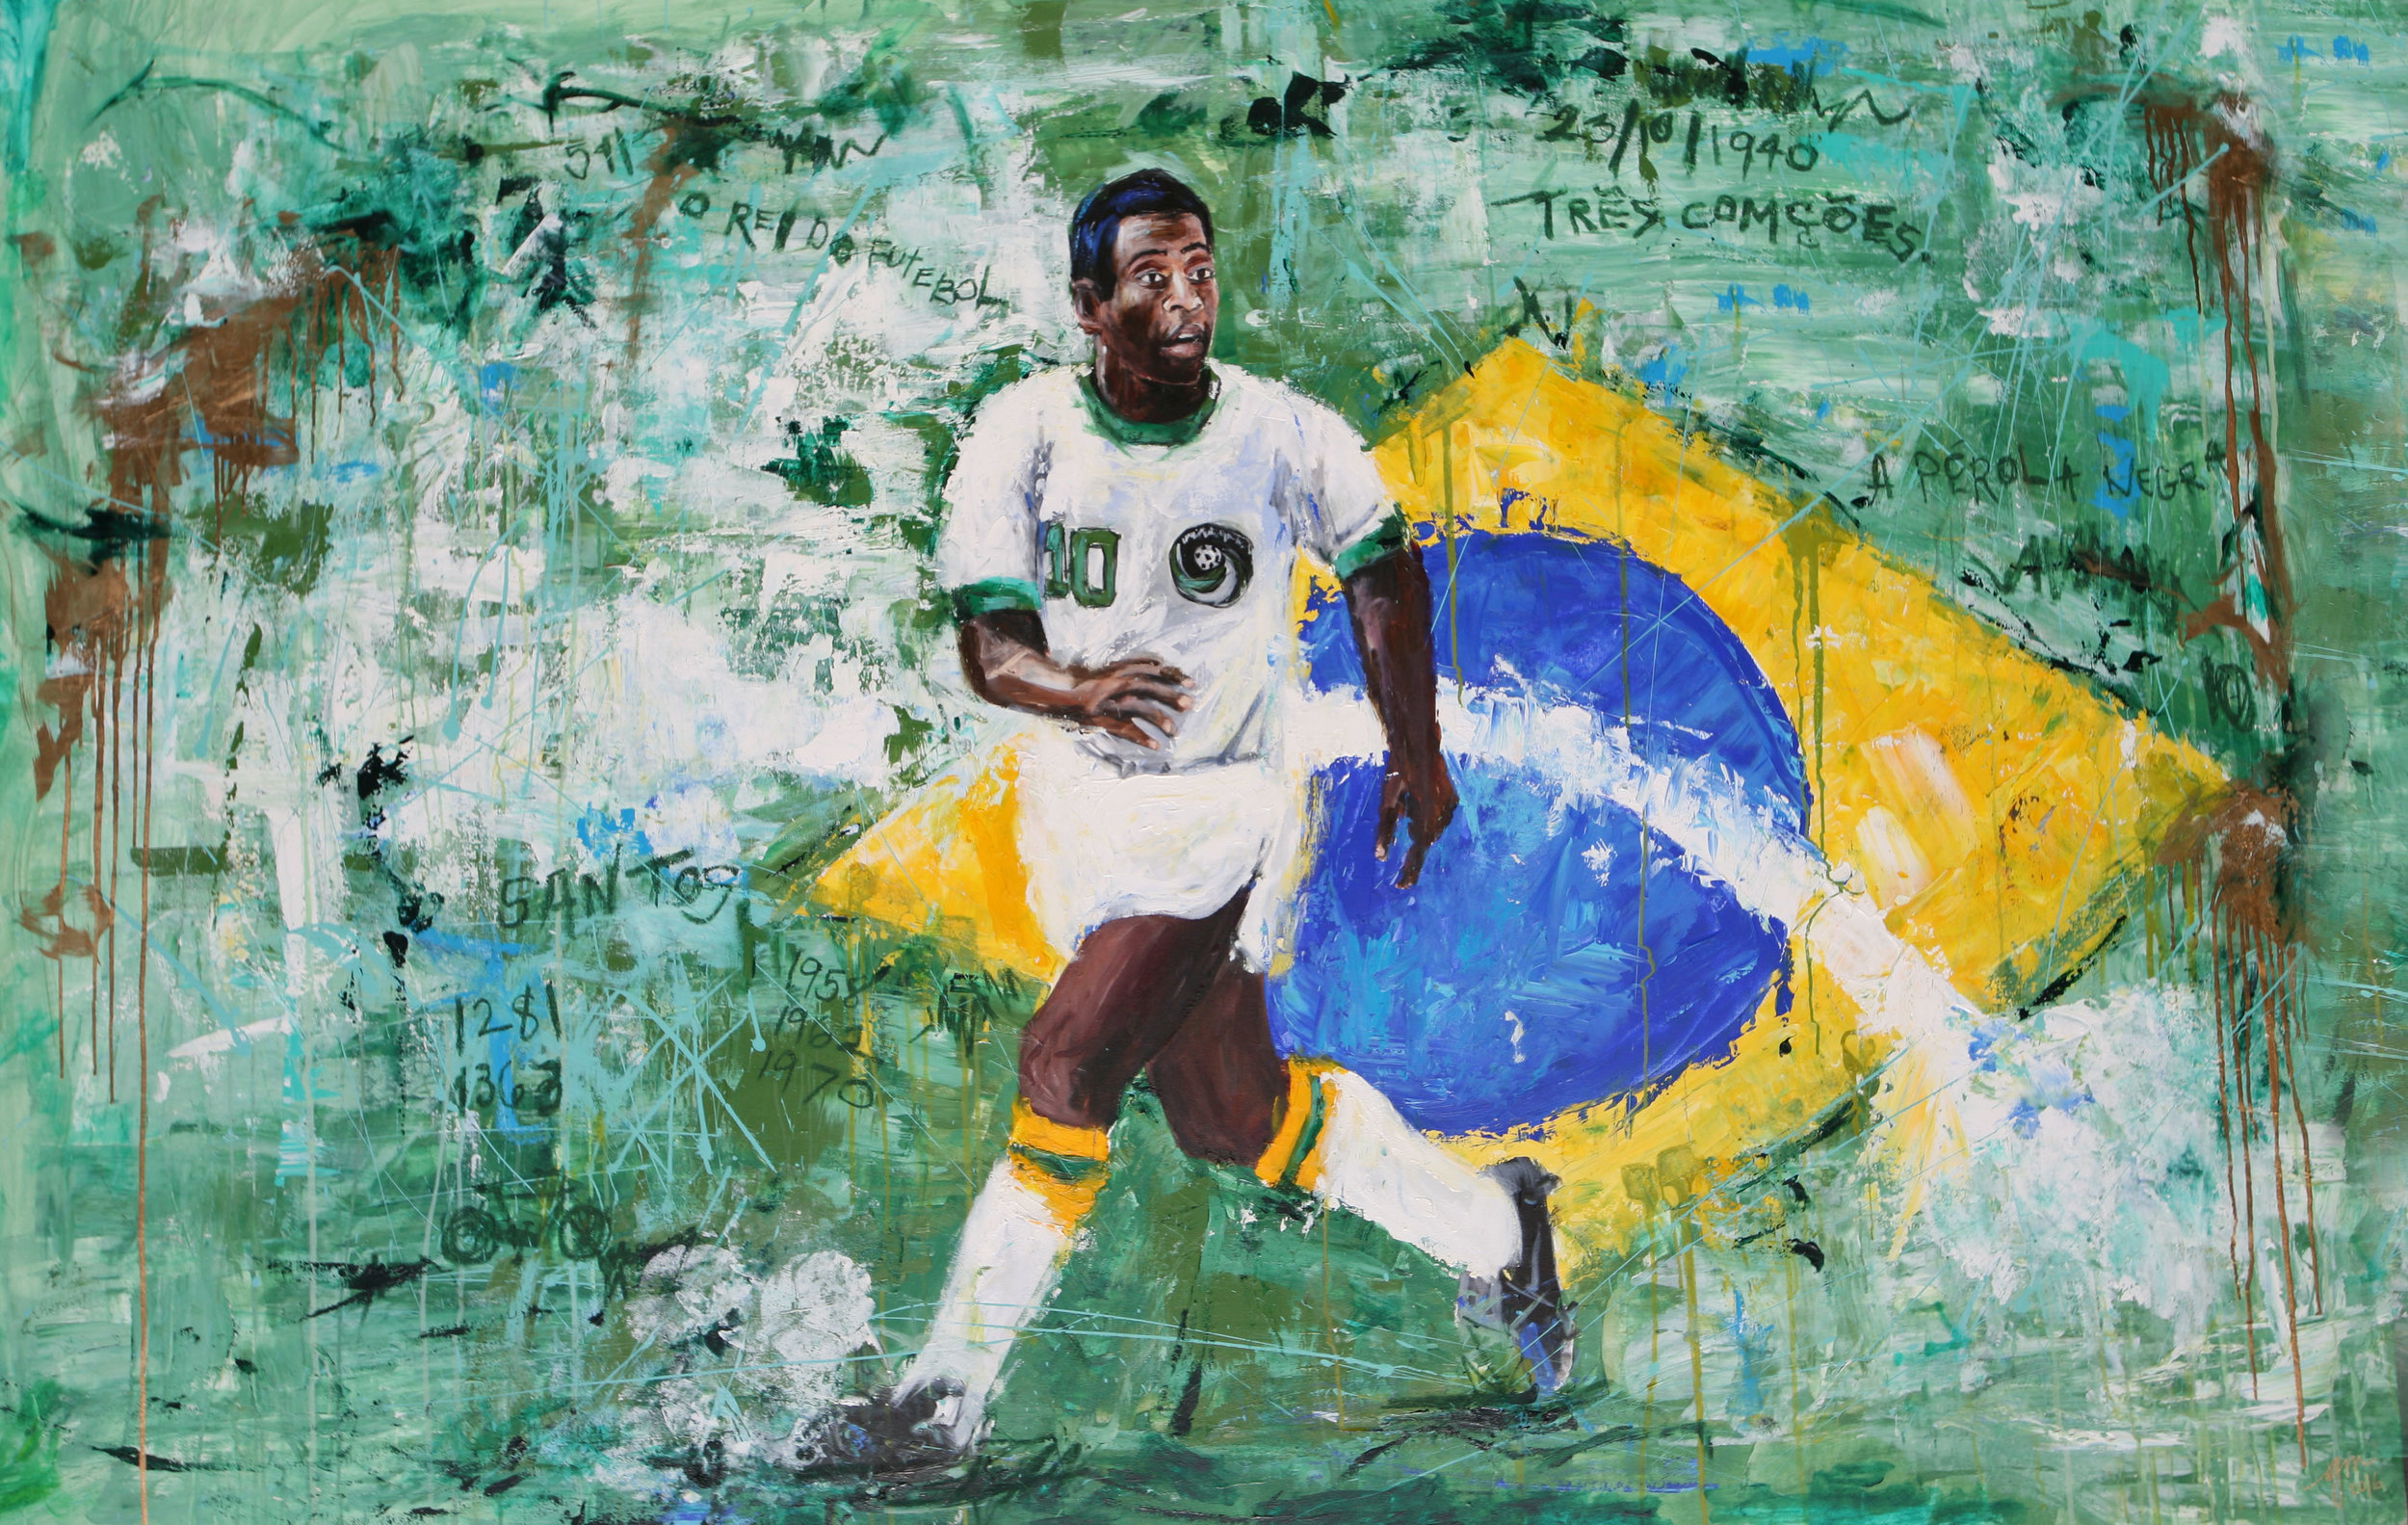 PELÉ THE GREAT , 2016 (GREATEST OF ALL TIME series)  57 X 87 INCHES   MIXED MEDIA – OIL/ACRYLIC ON STRETCHED LINEN CANVAS  *pricing available upon request